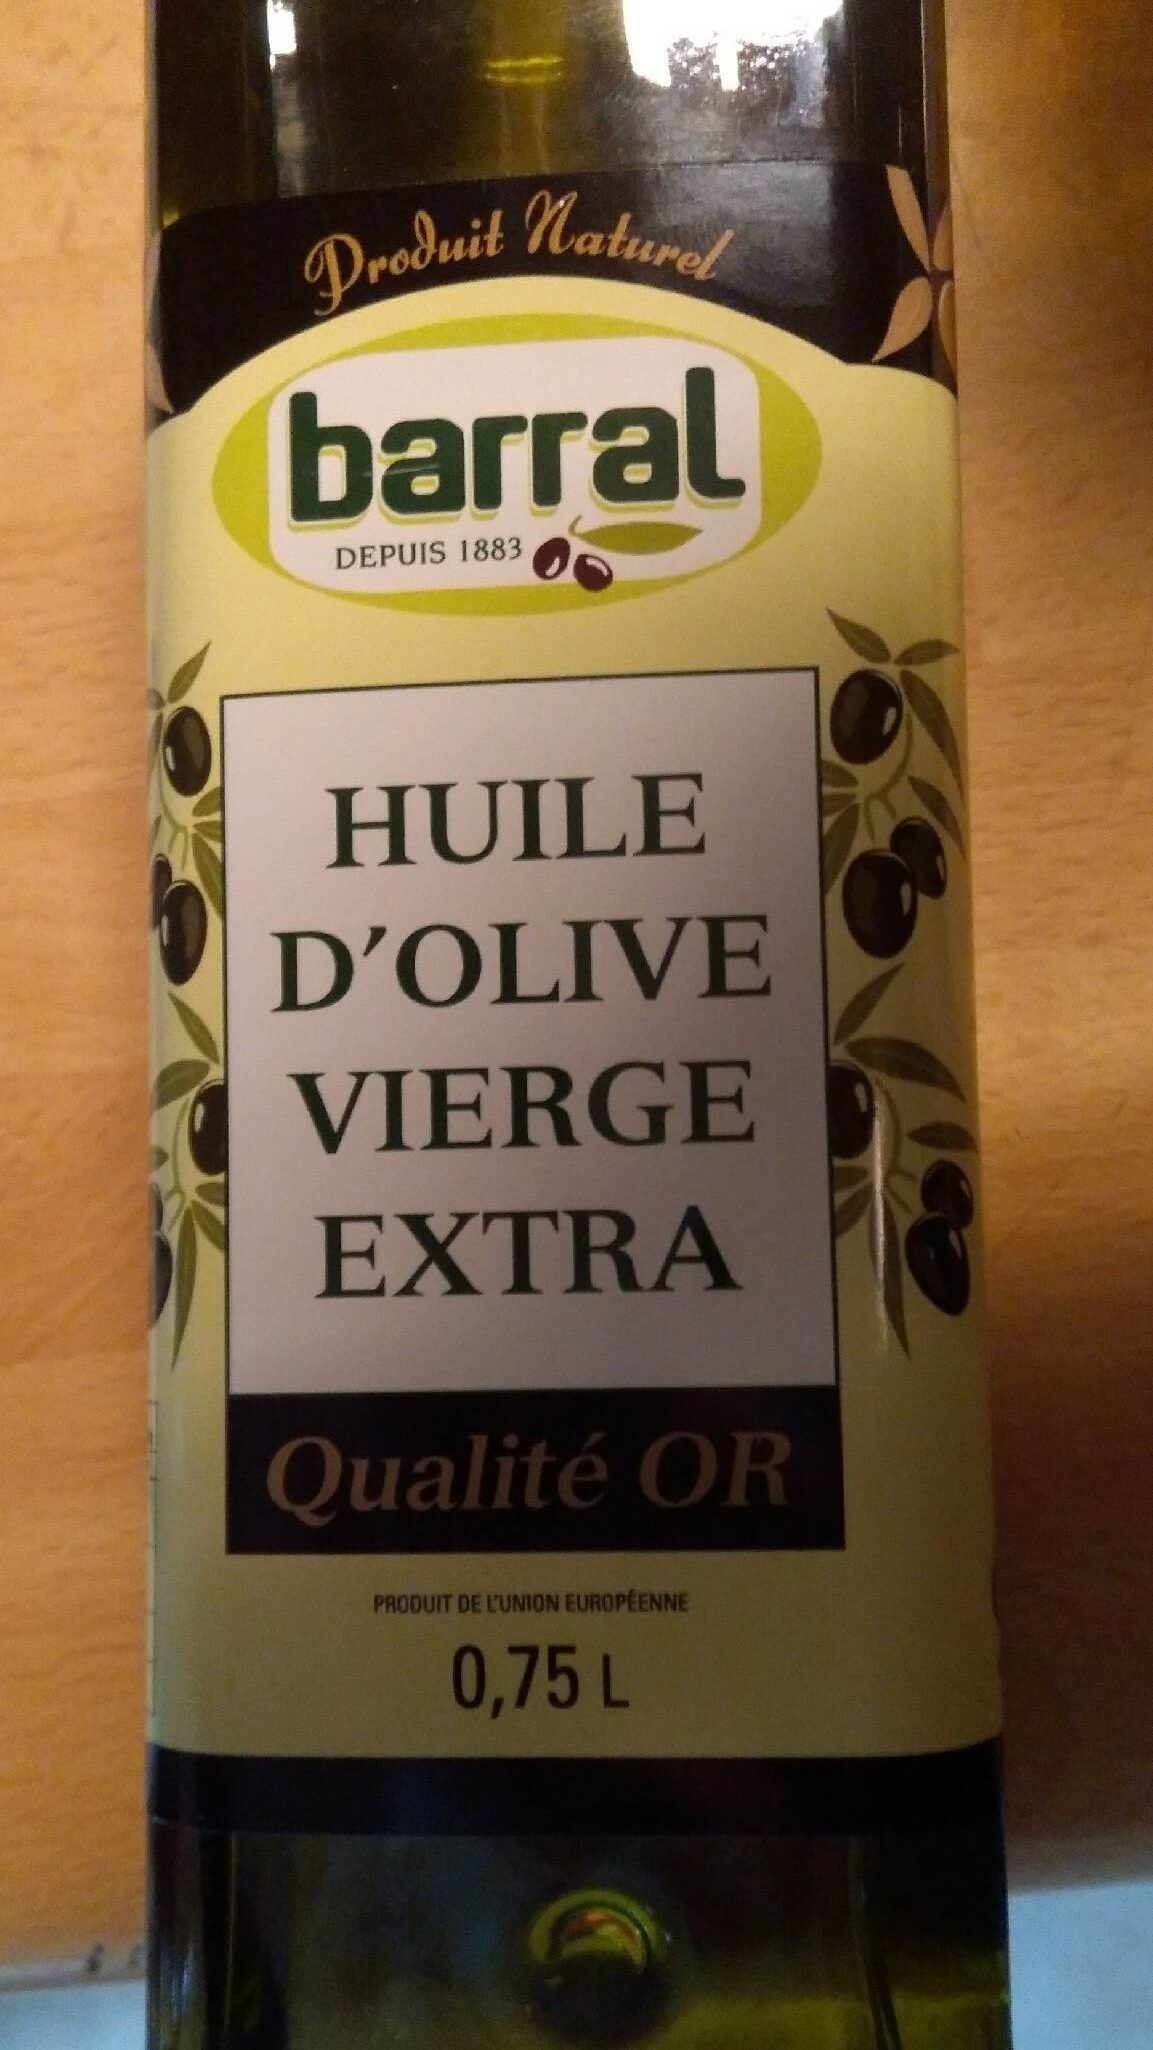 Huile d'olive vierge extra - Product - fr